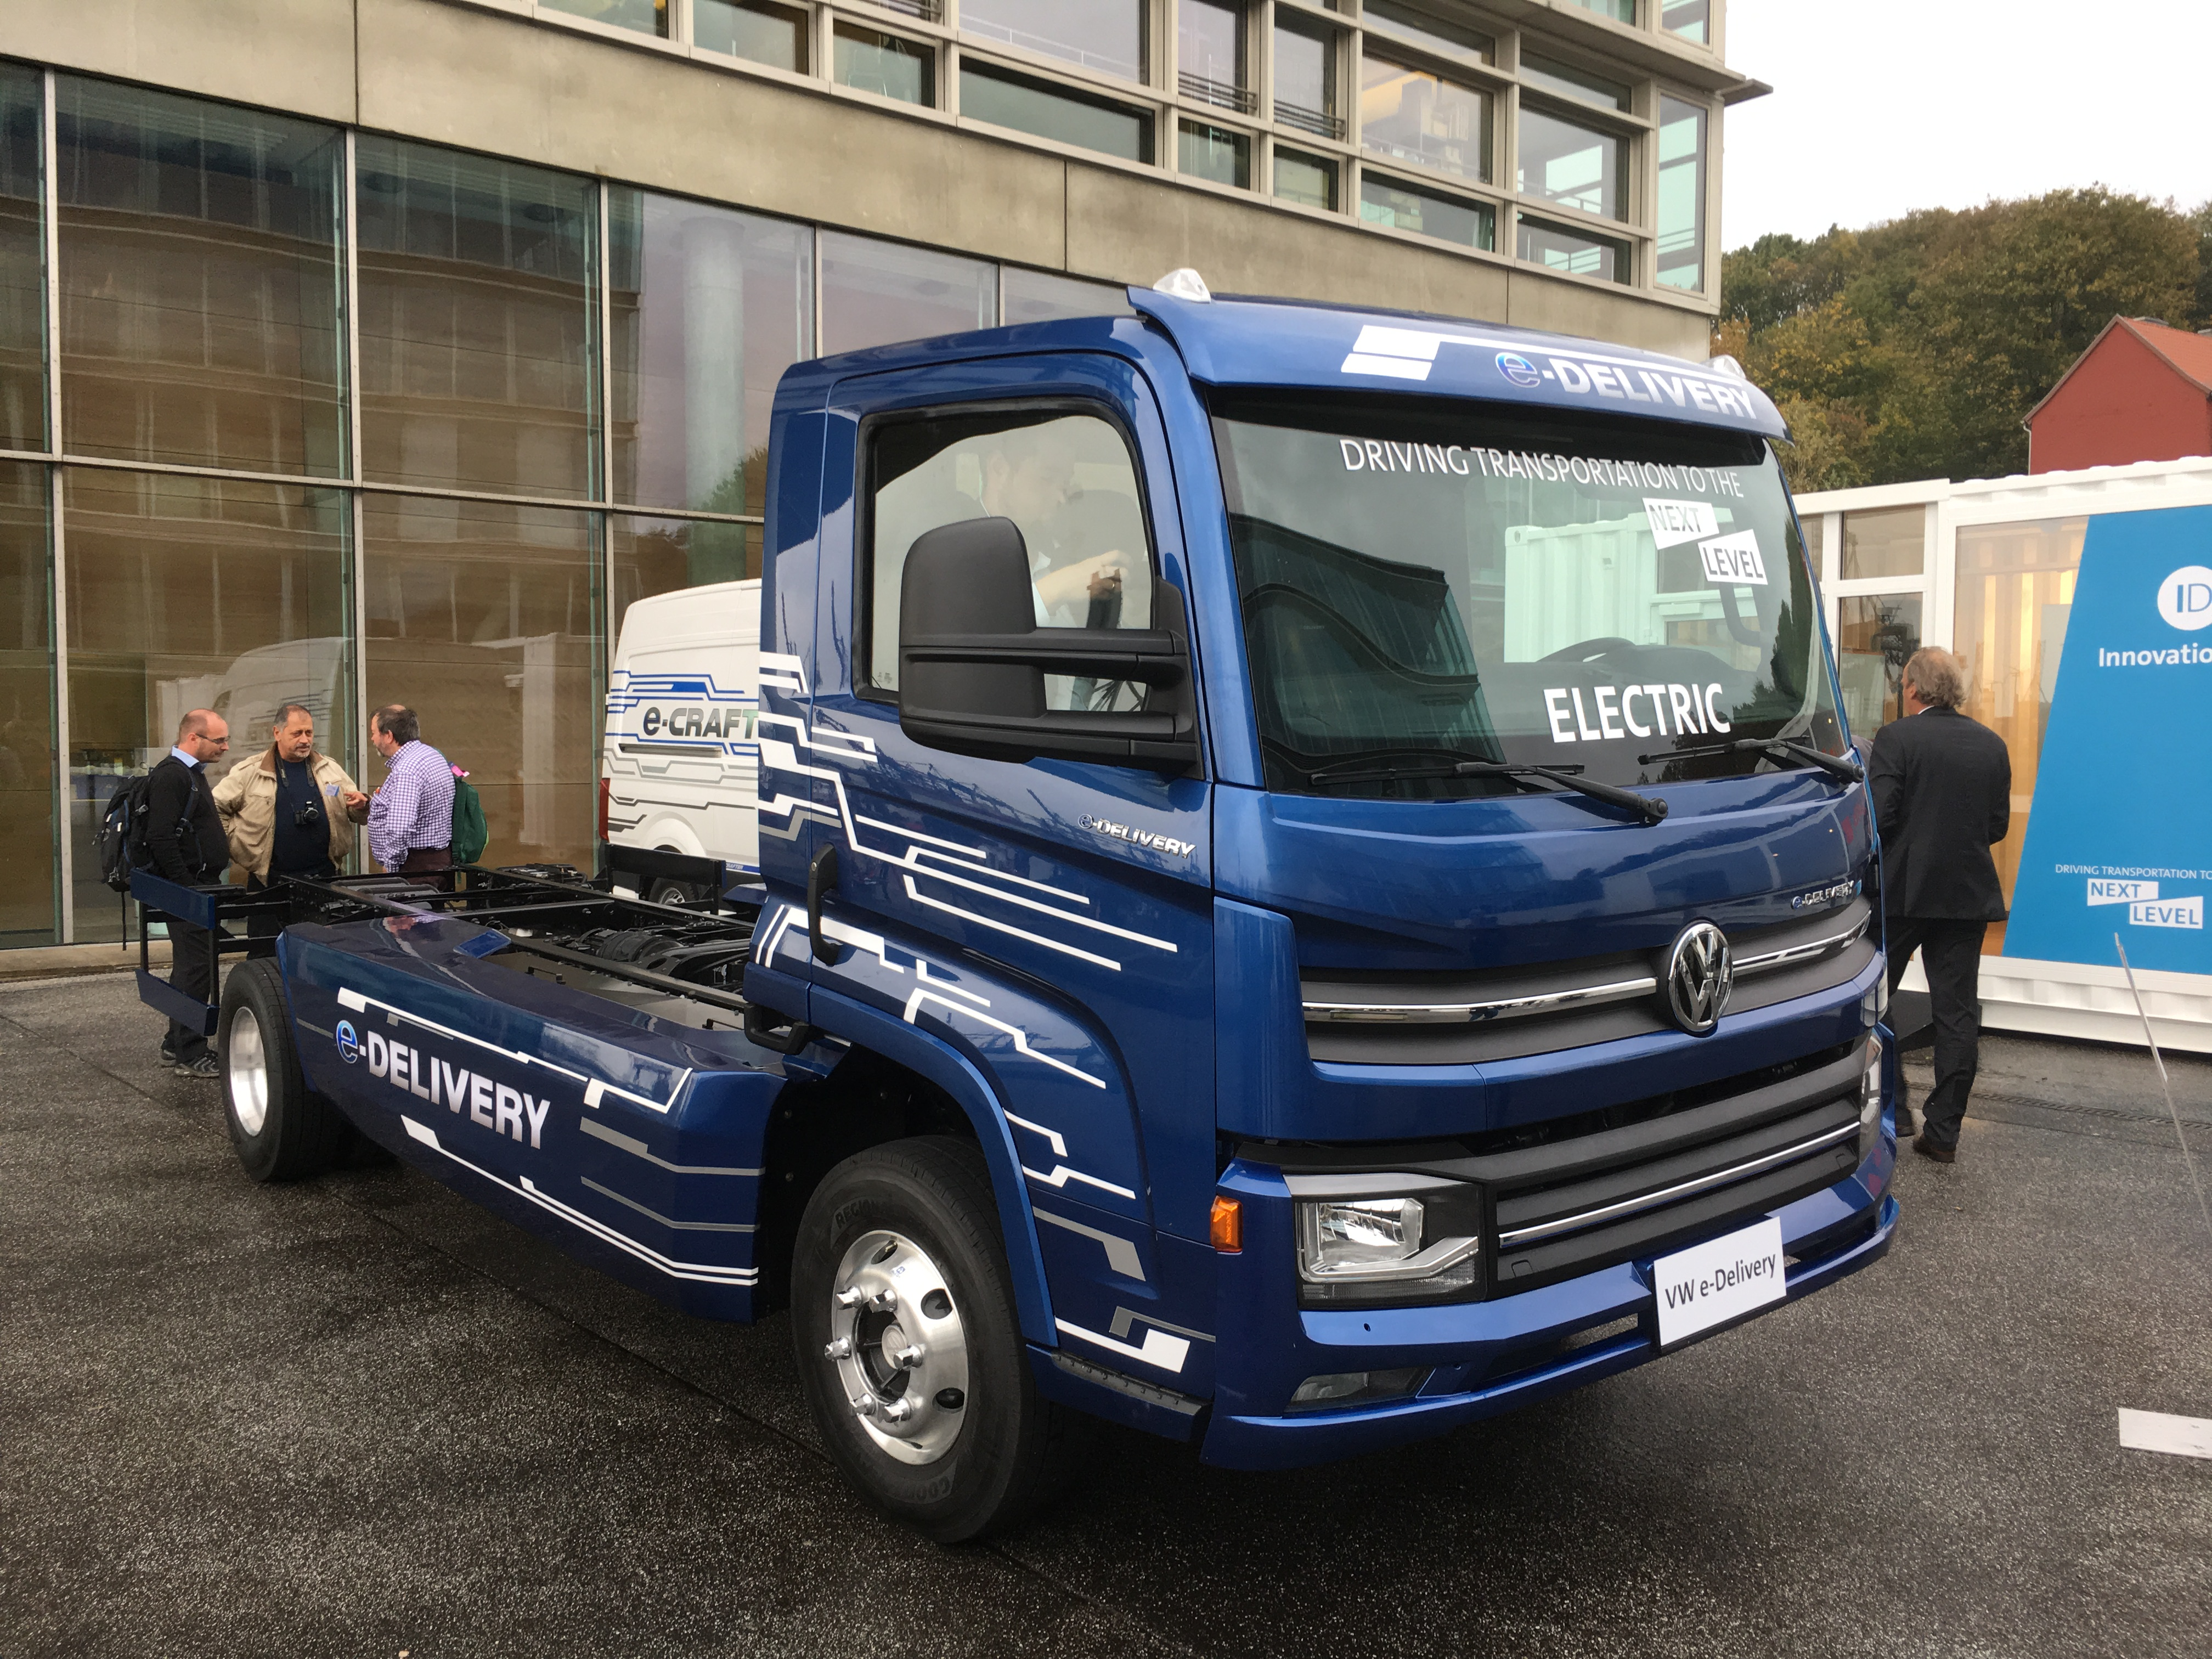 Vw E Delivery Presented Iepieleaks